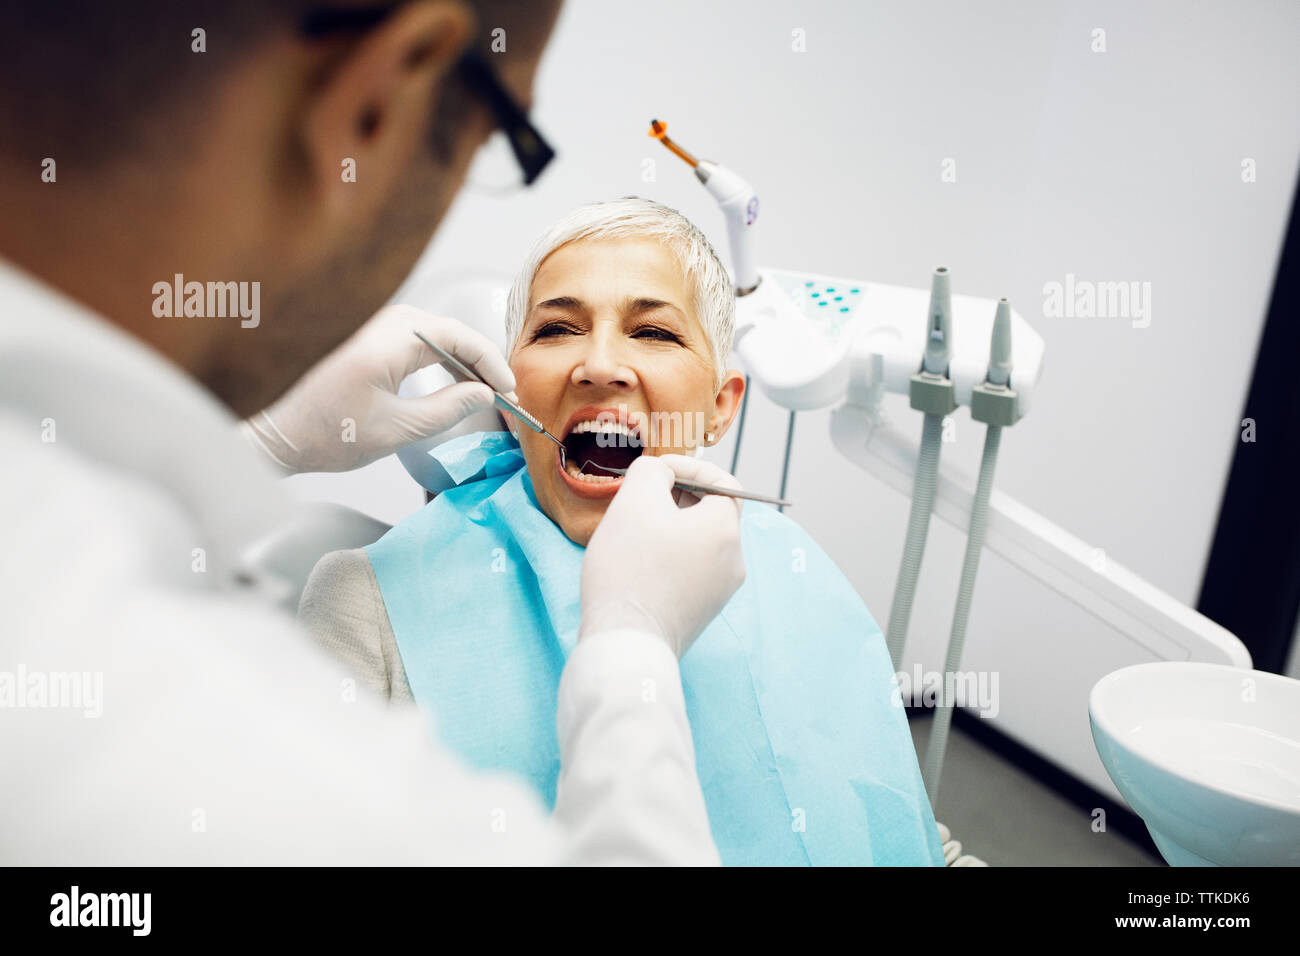 Male dentist examining patient's teeth at clinic Stock Photo